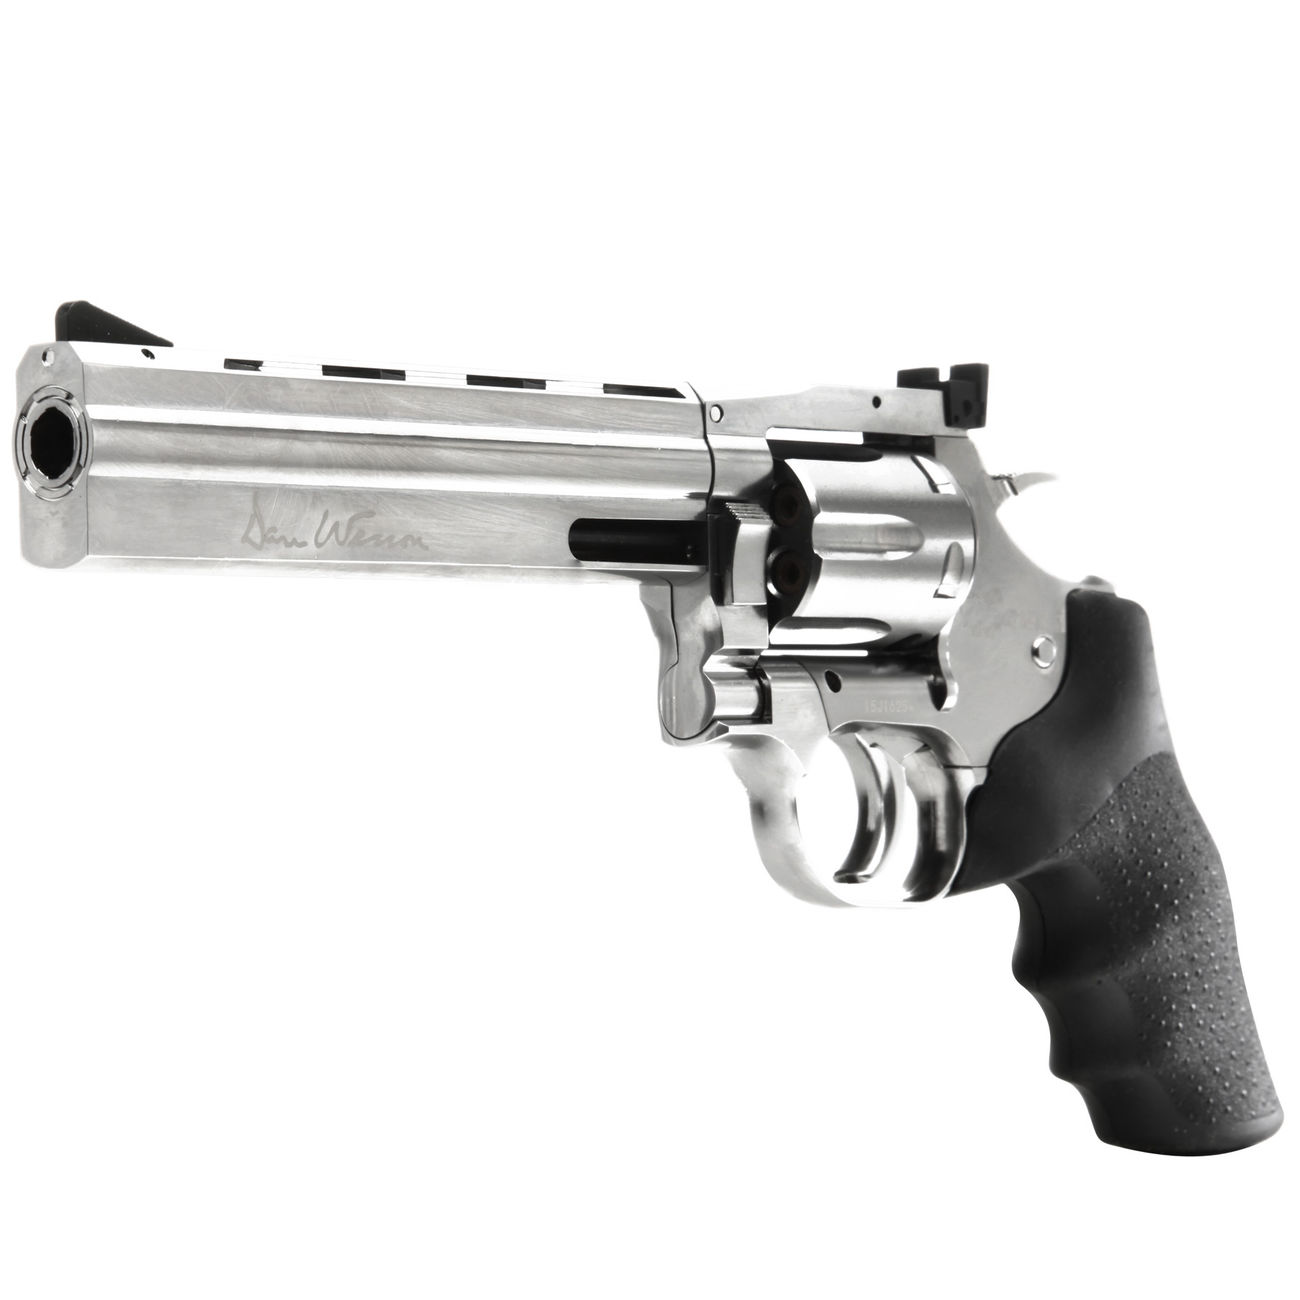 ASG Dan Wesson 715 CO2 Revolver 6 Zoll Kal. 4,5mm BB Starterset 1